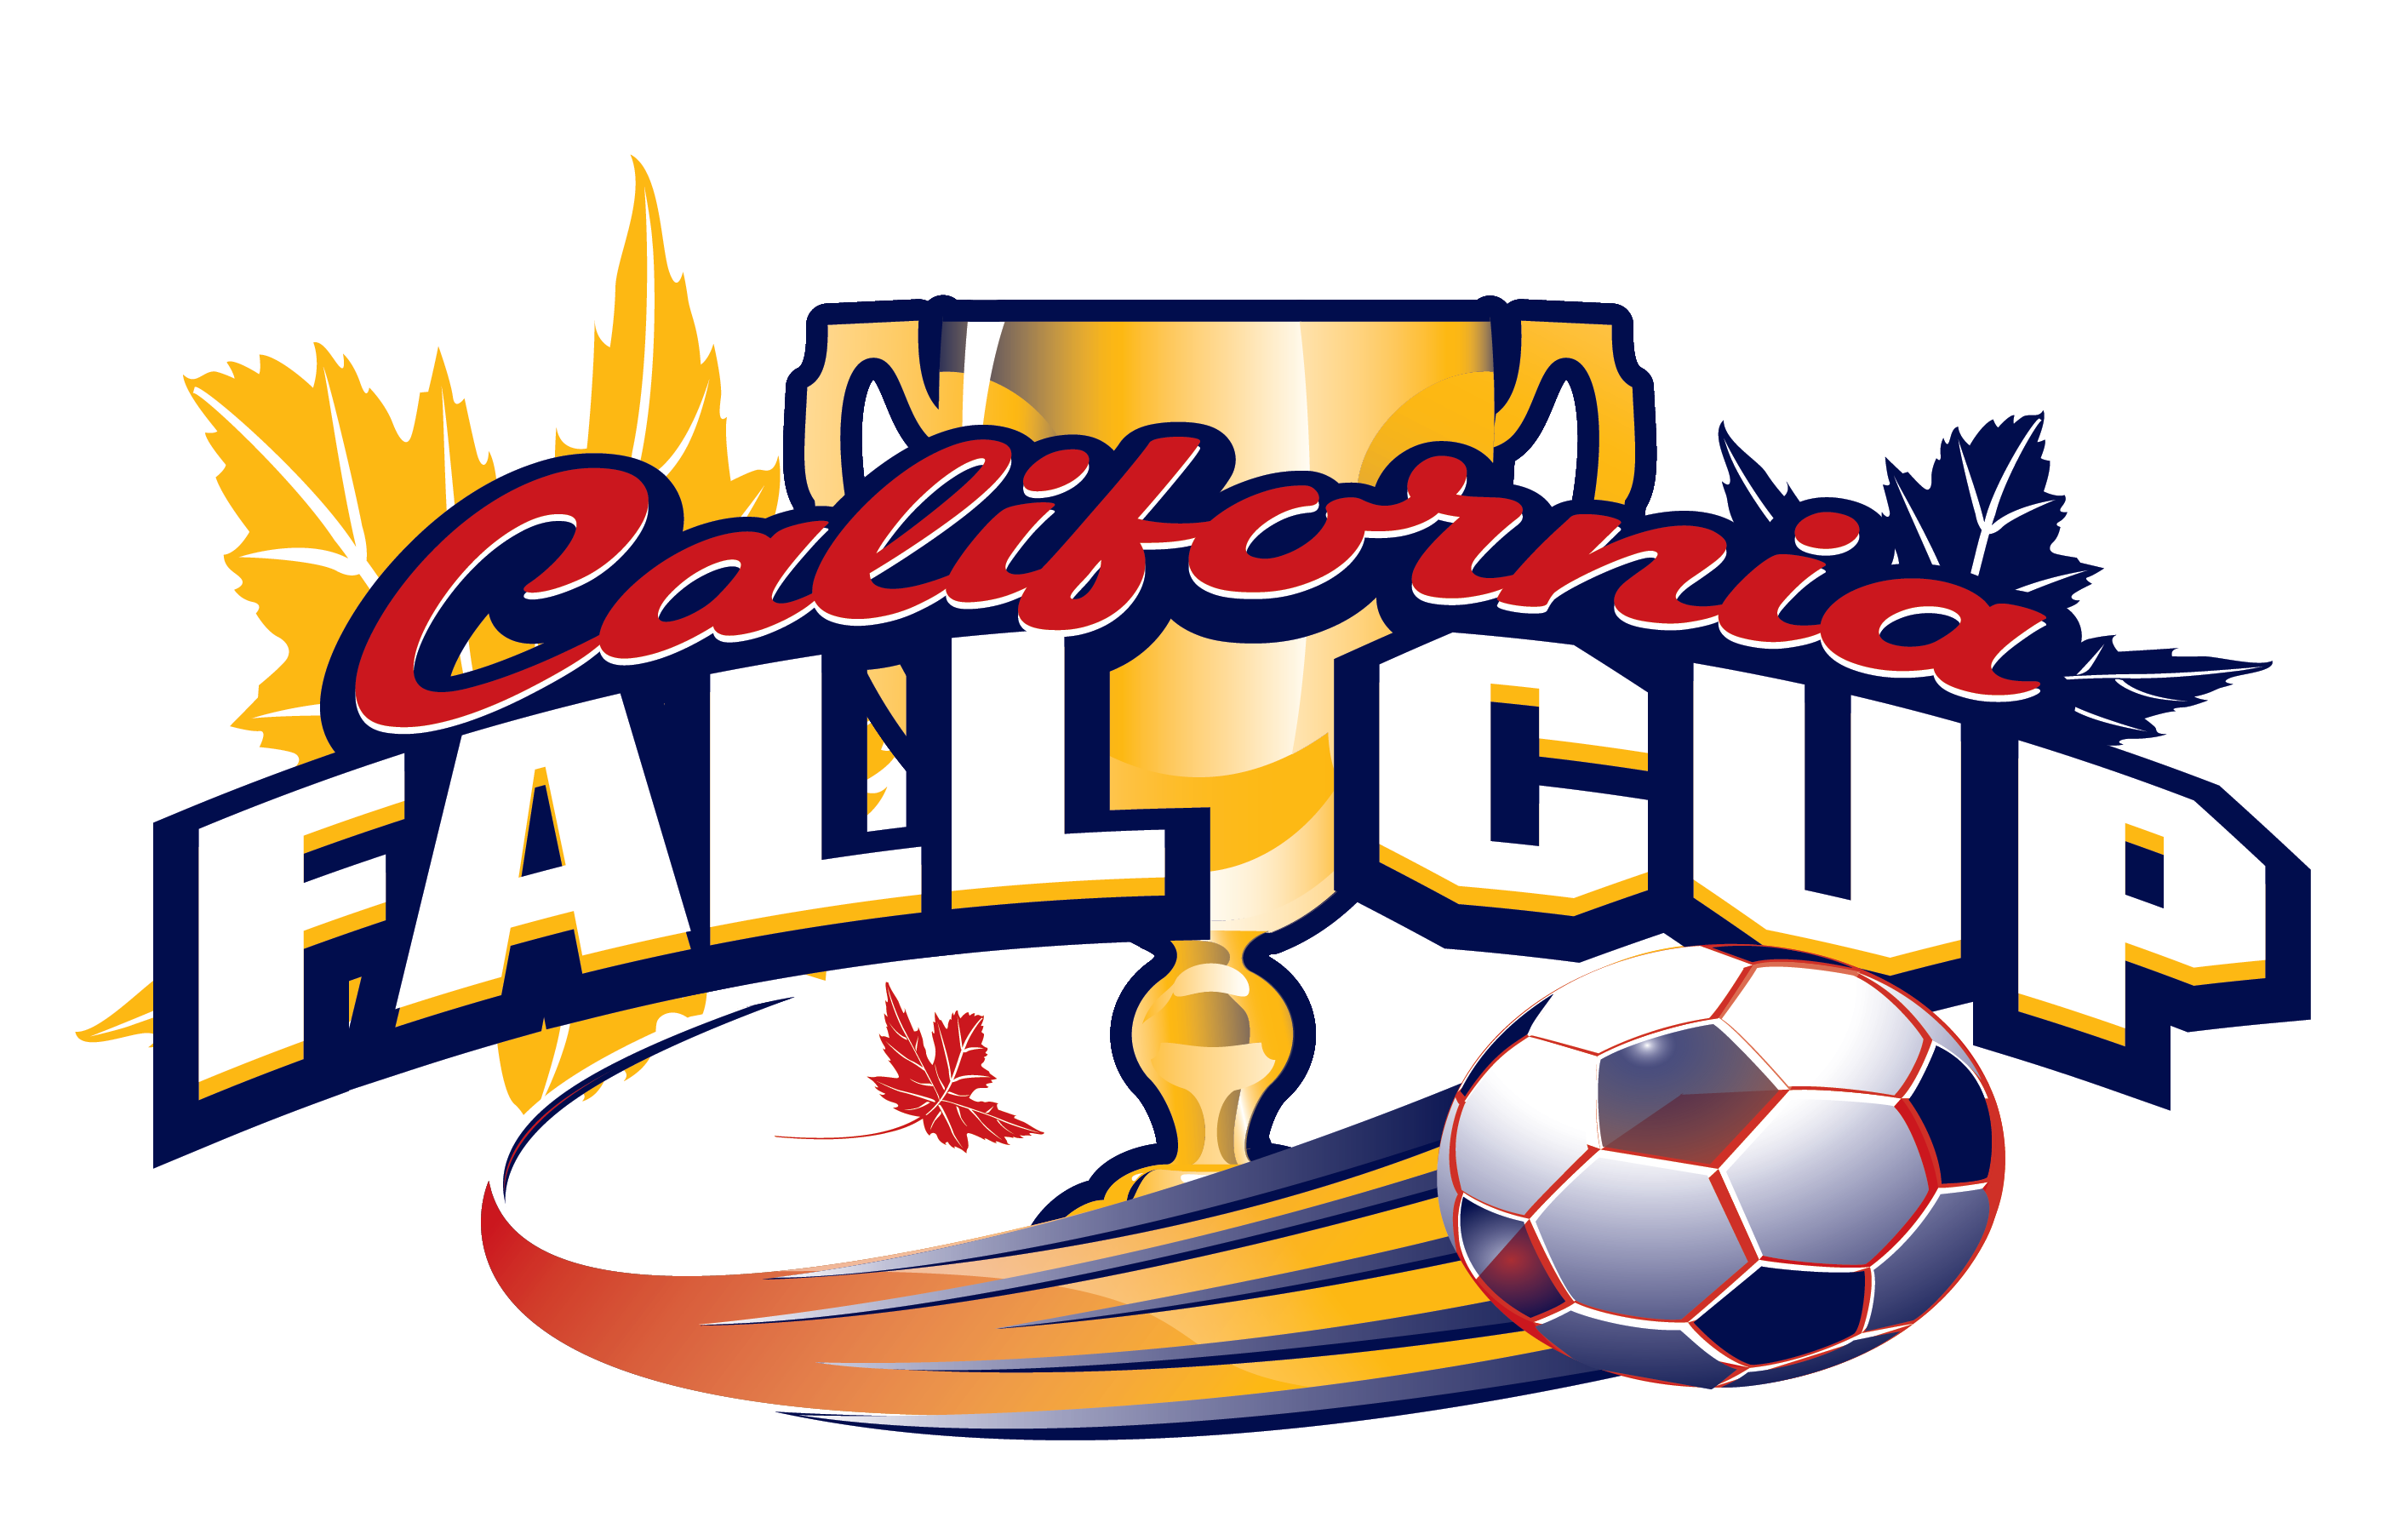 California_fall_cup_2017